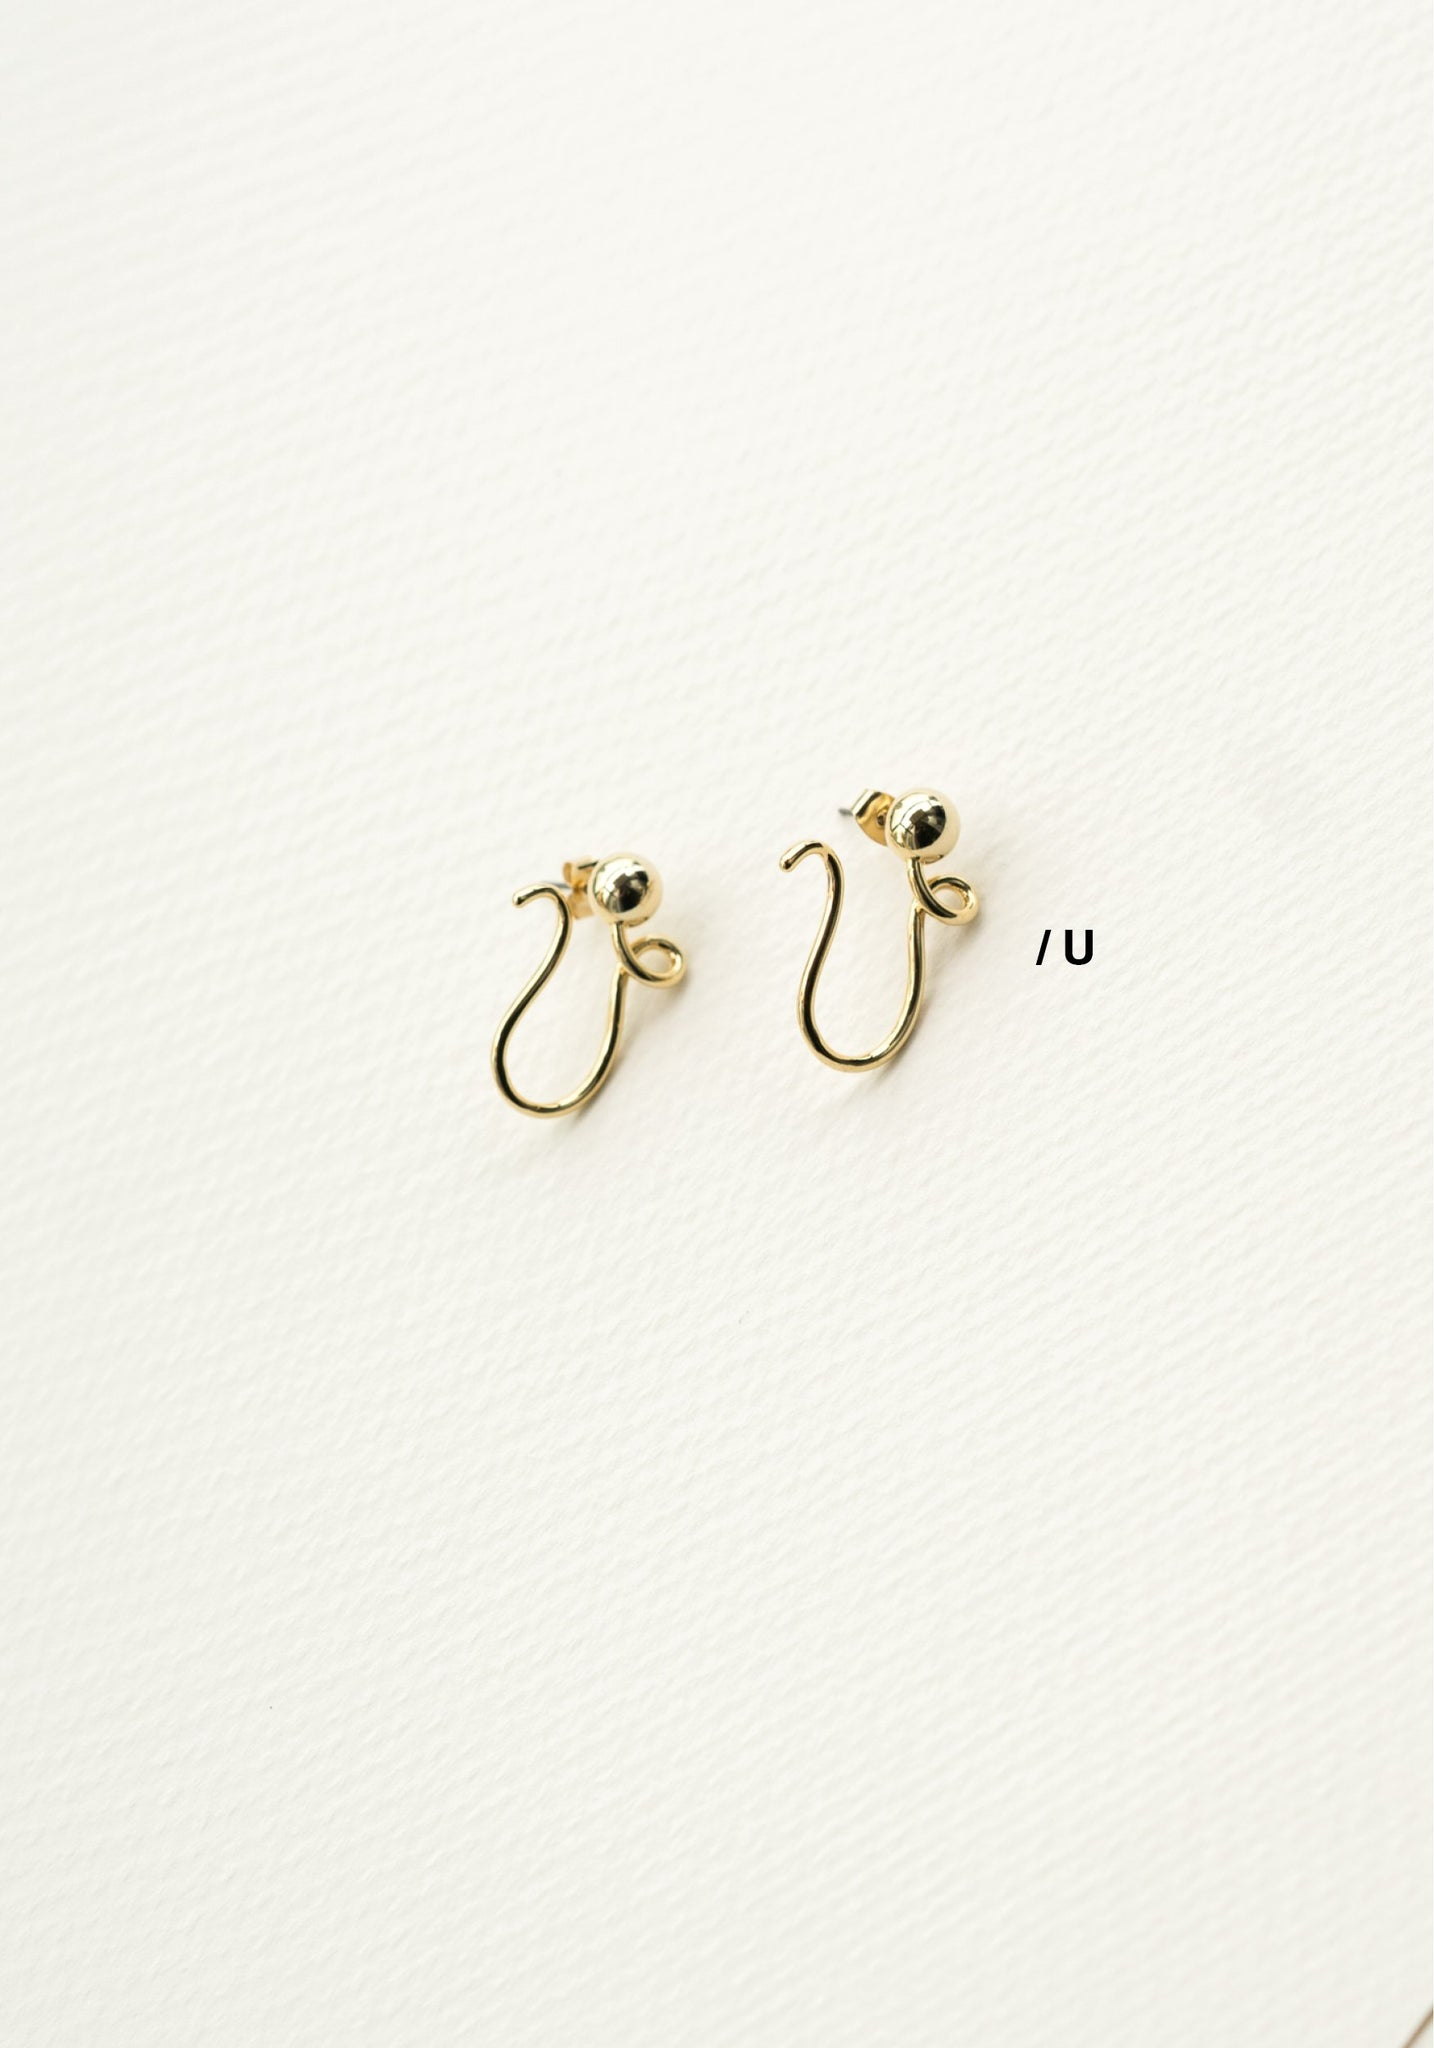 Alphabet Earrings U